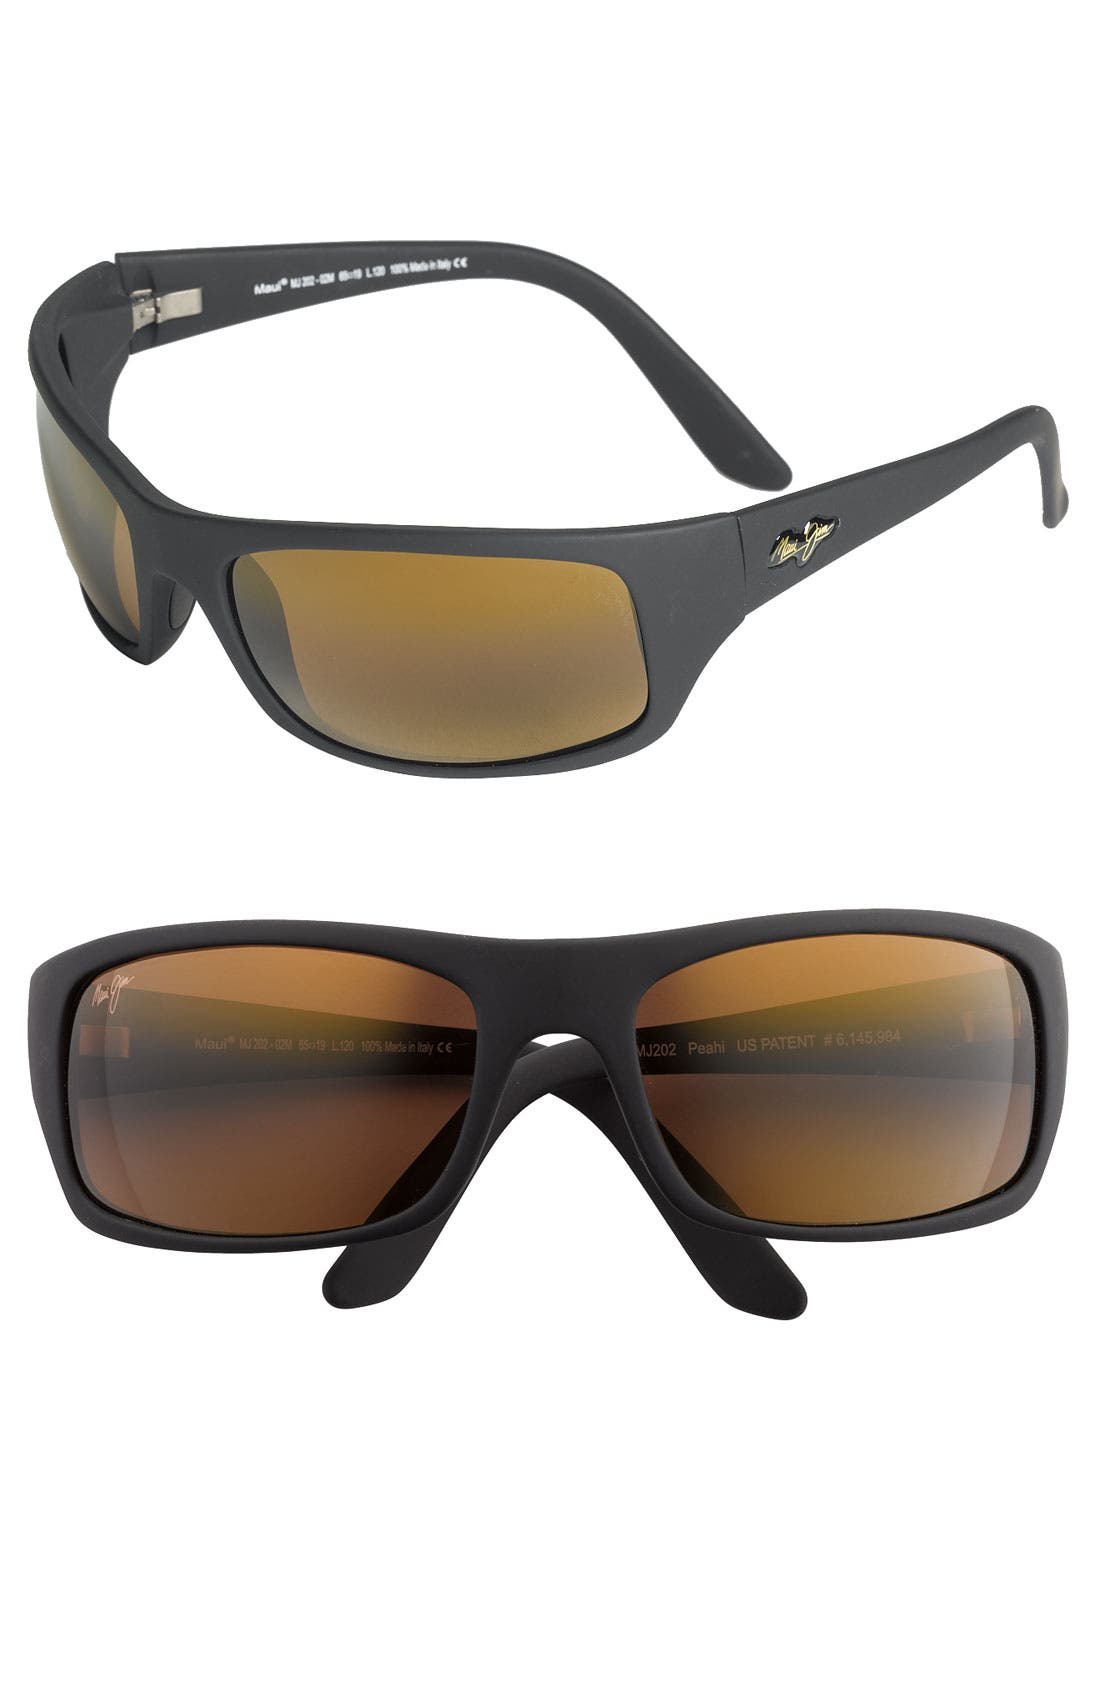 Main Image - Maui Jim 'Peahi - PolarizedPlus®2' 65mm Sunglasses